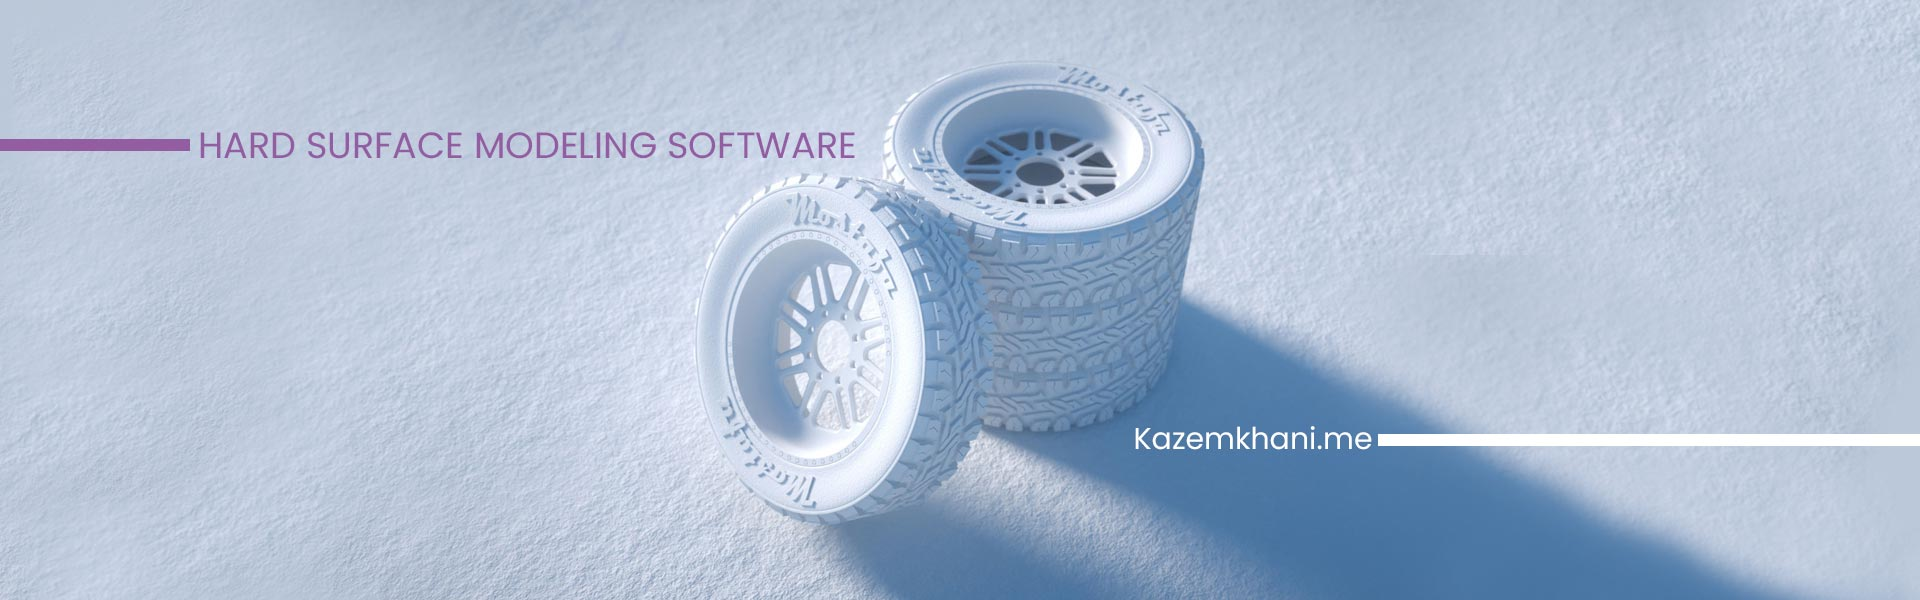 Top software for hard surface modeling